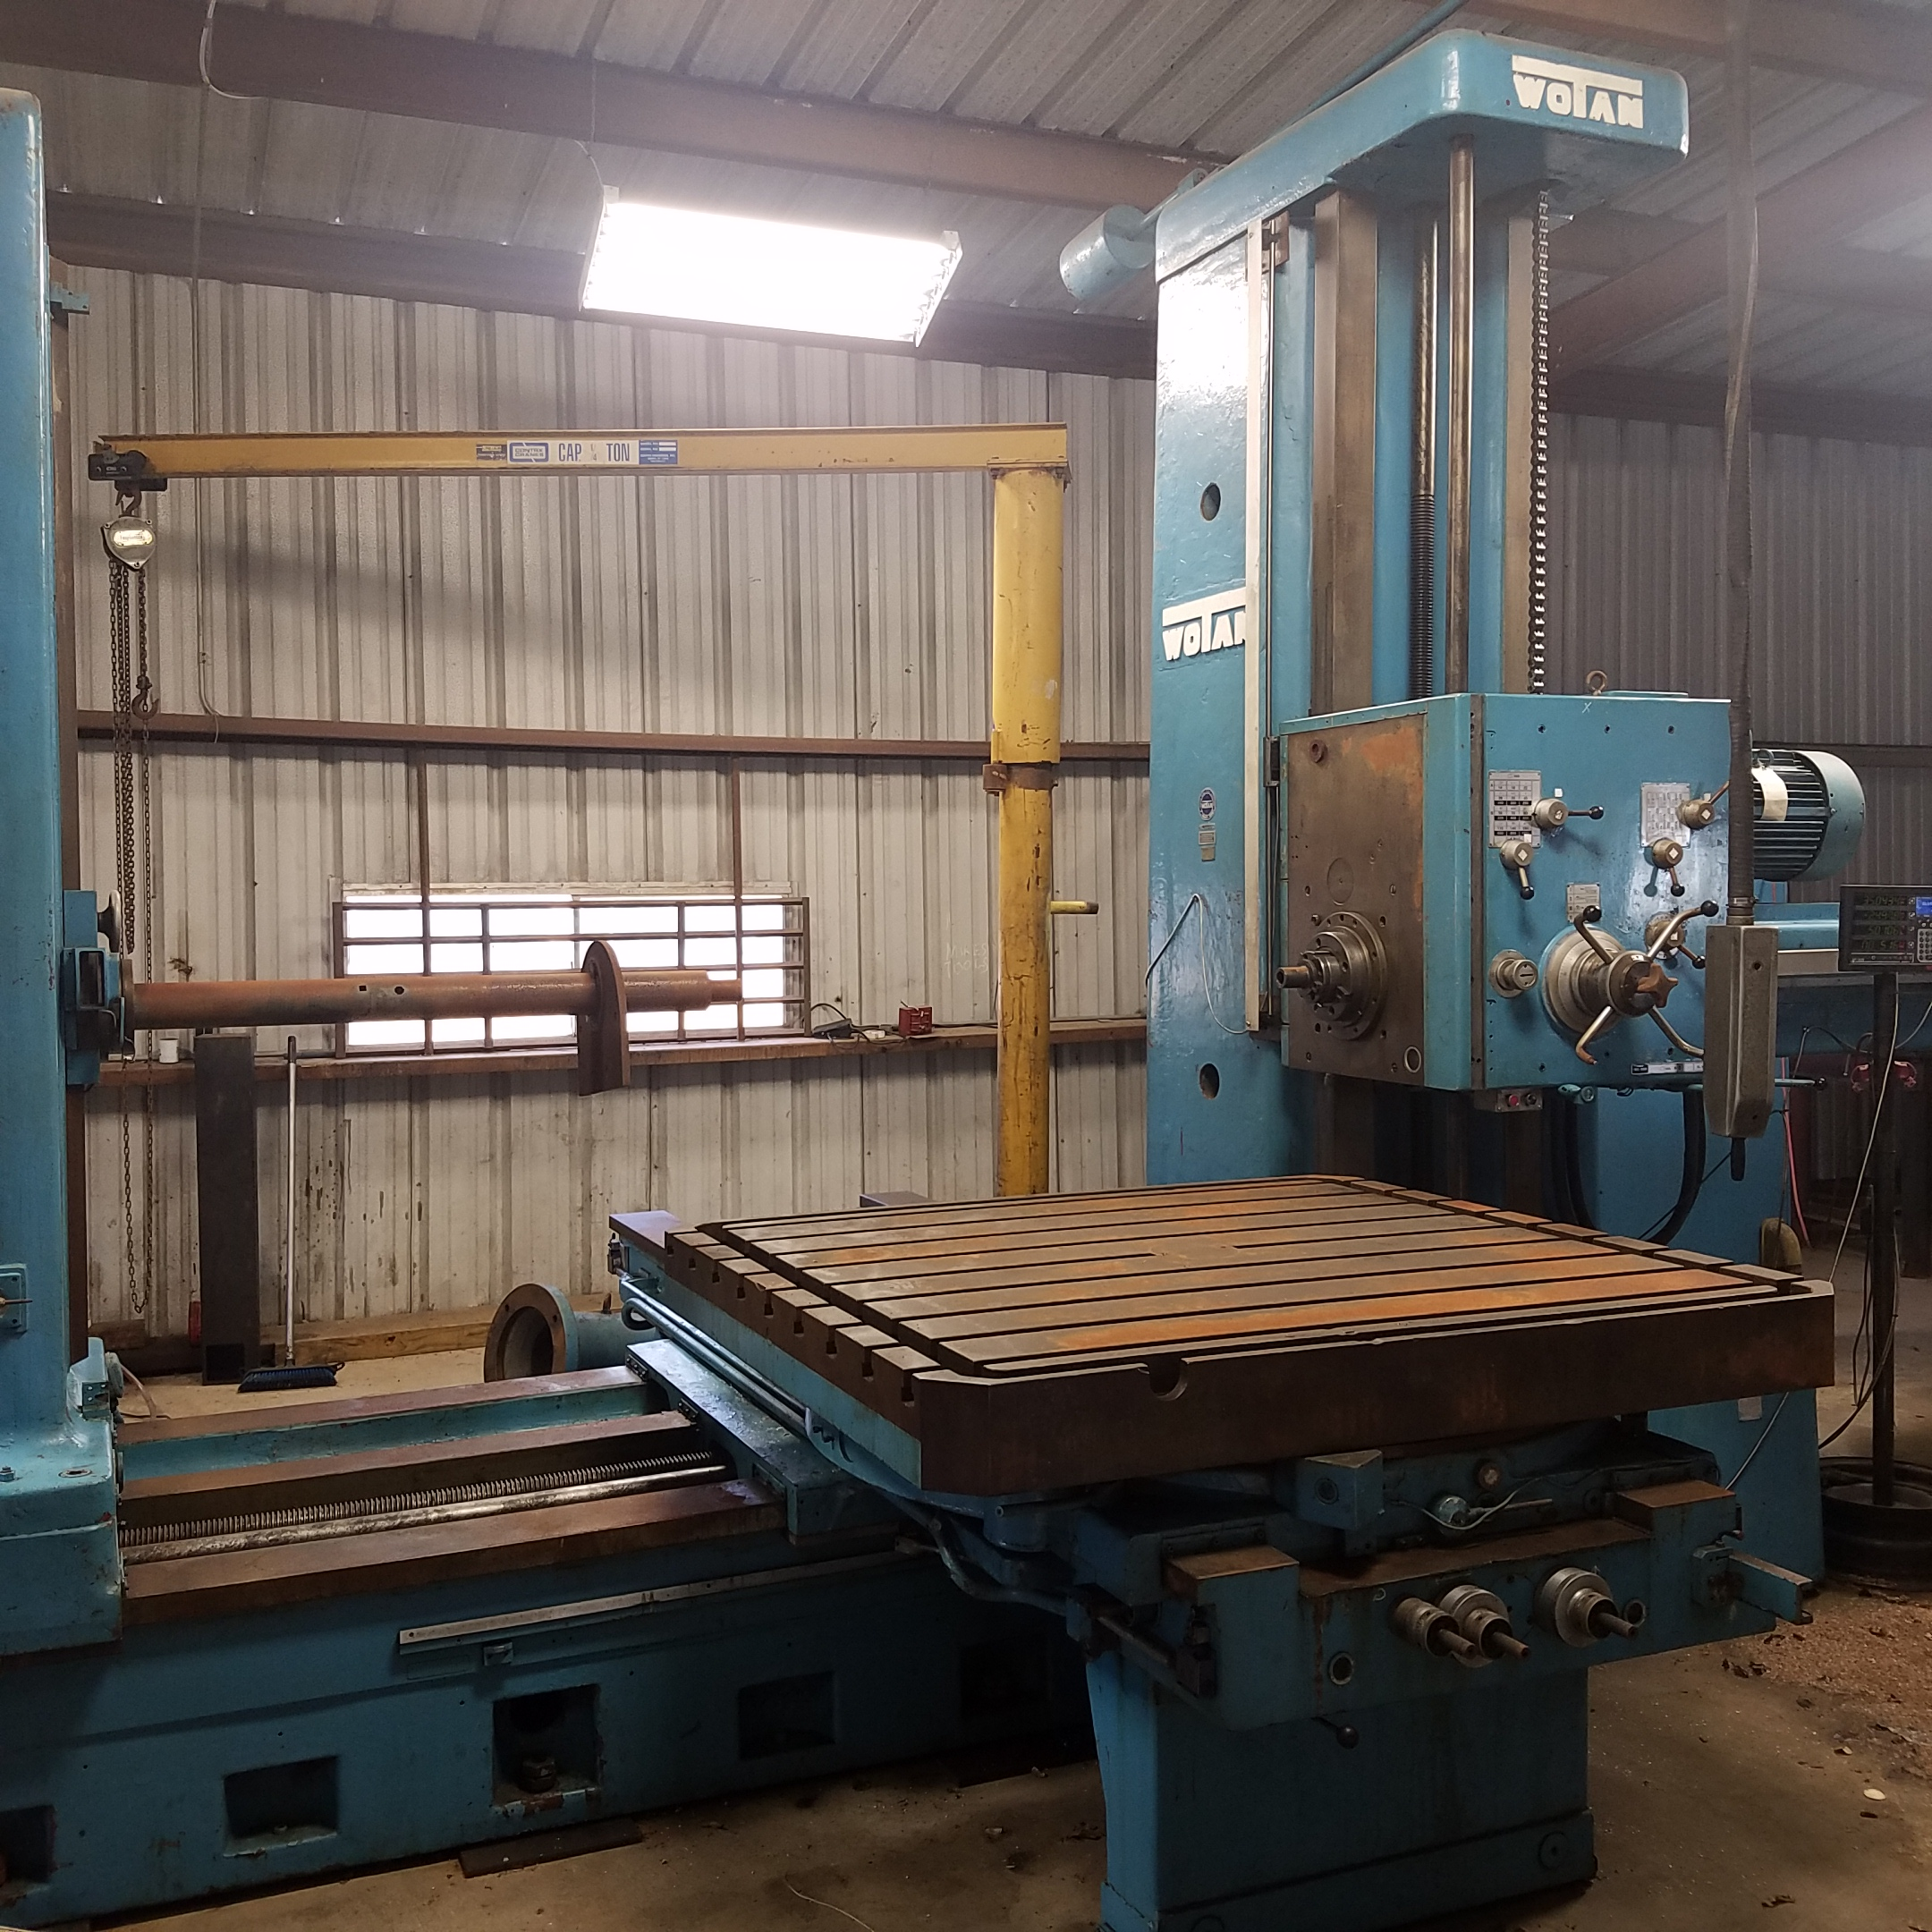 Used Horizontal Boring Mill Wotan B130S 1970